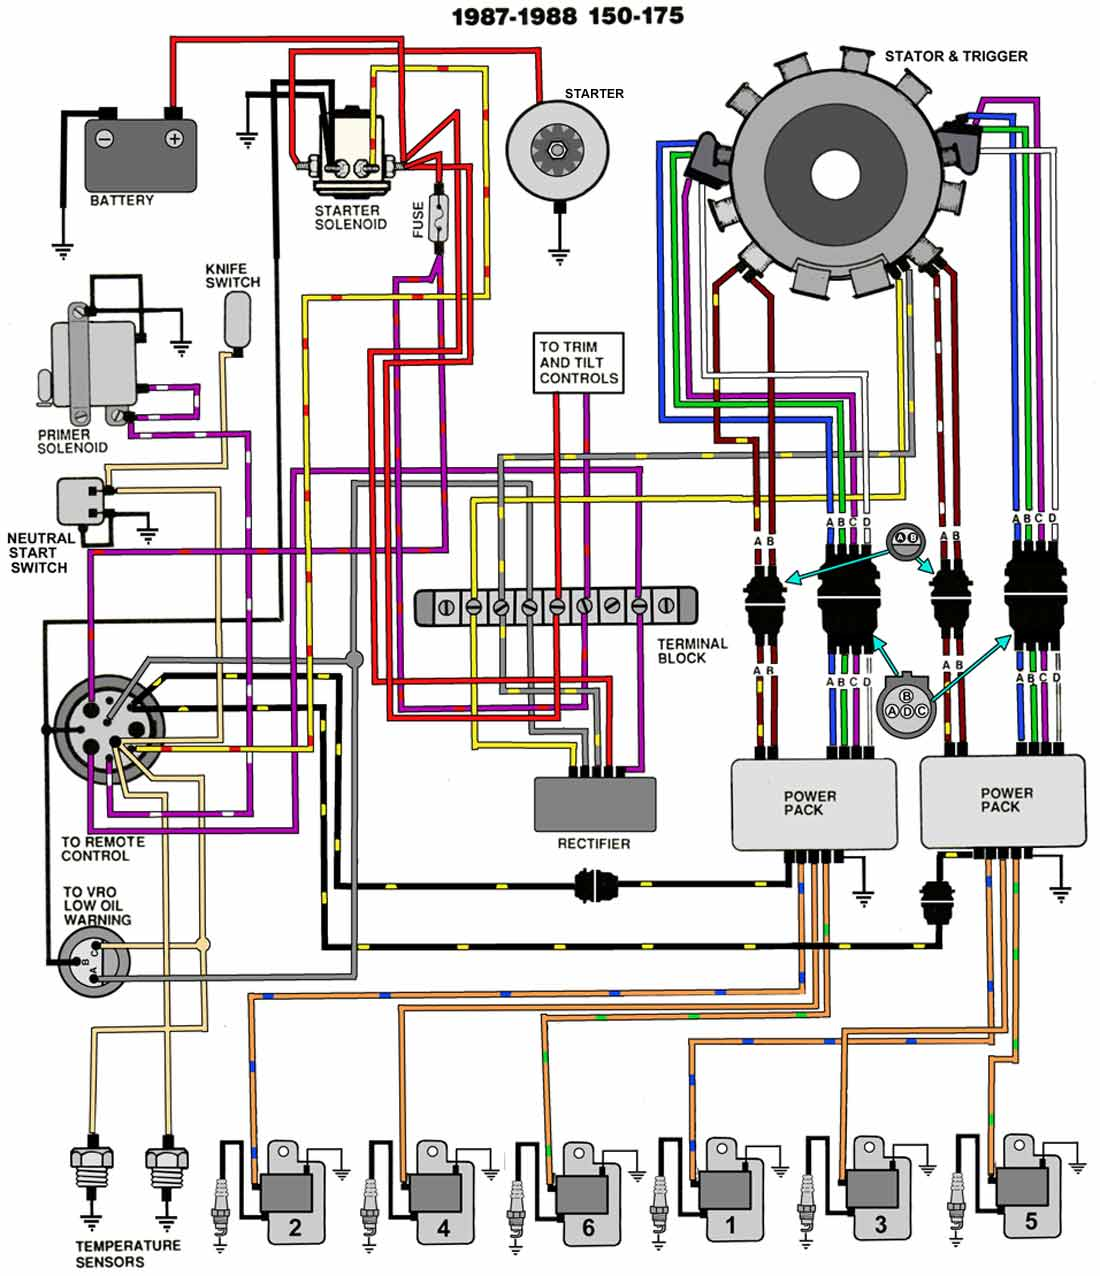 87_88_150_175 yamaha outboard motor wiring diagrams the wiring diagram Mercury Outboard Wiring Schematic Diagram at fashall.co